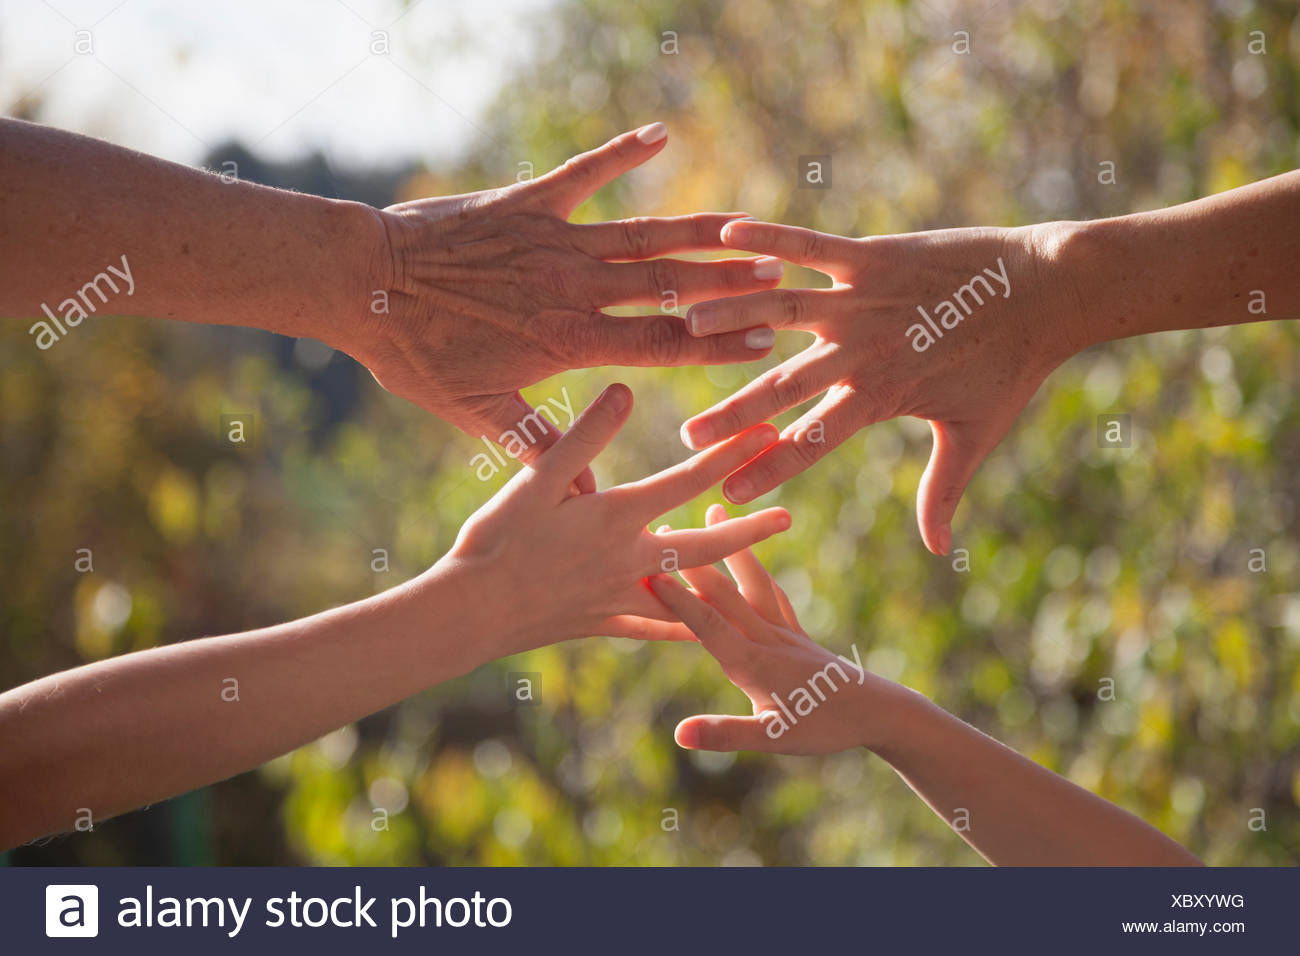 Close up of a family hands together against sunlight, Bavaria, Germany - Stock Image